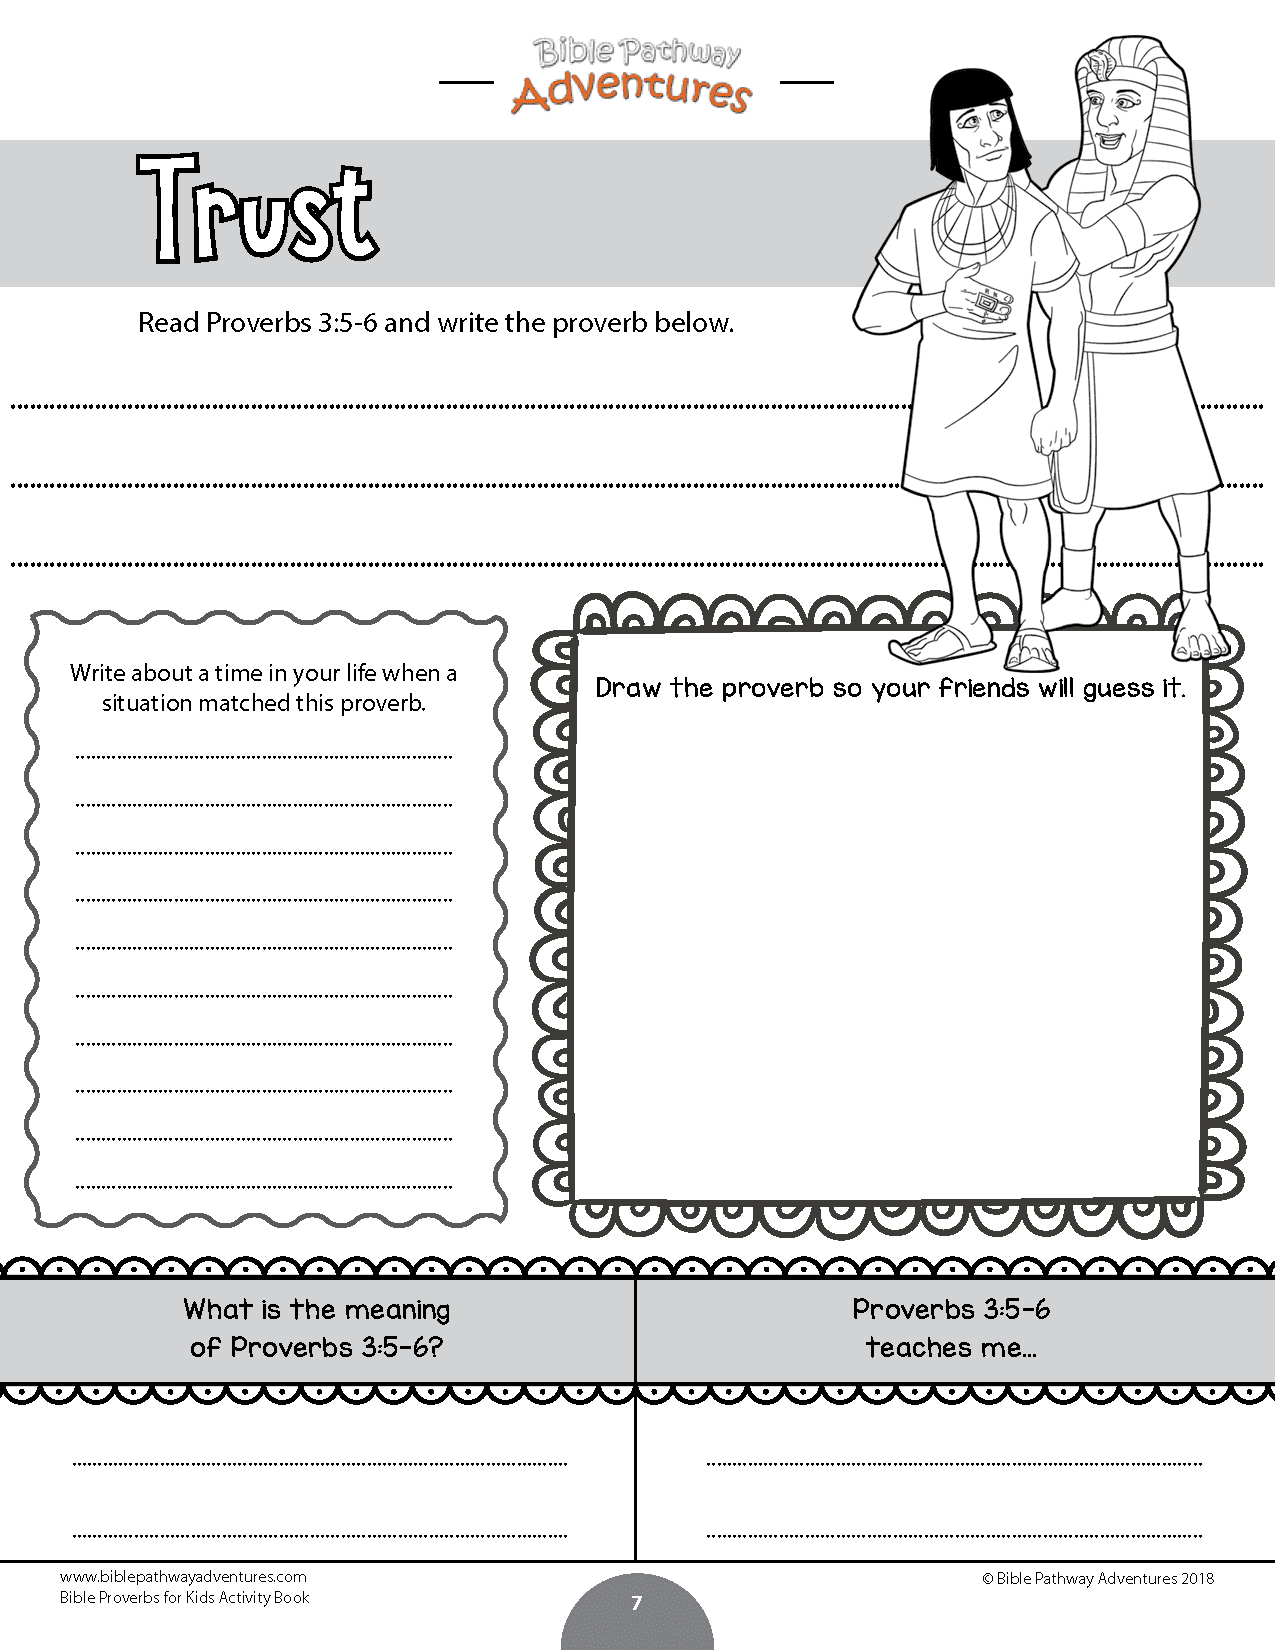 Bible Proverbs For Kids Coloring Activity Book Bible